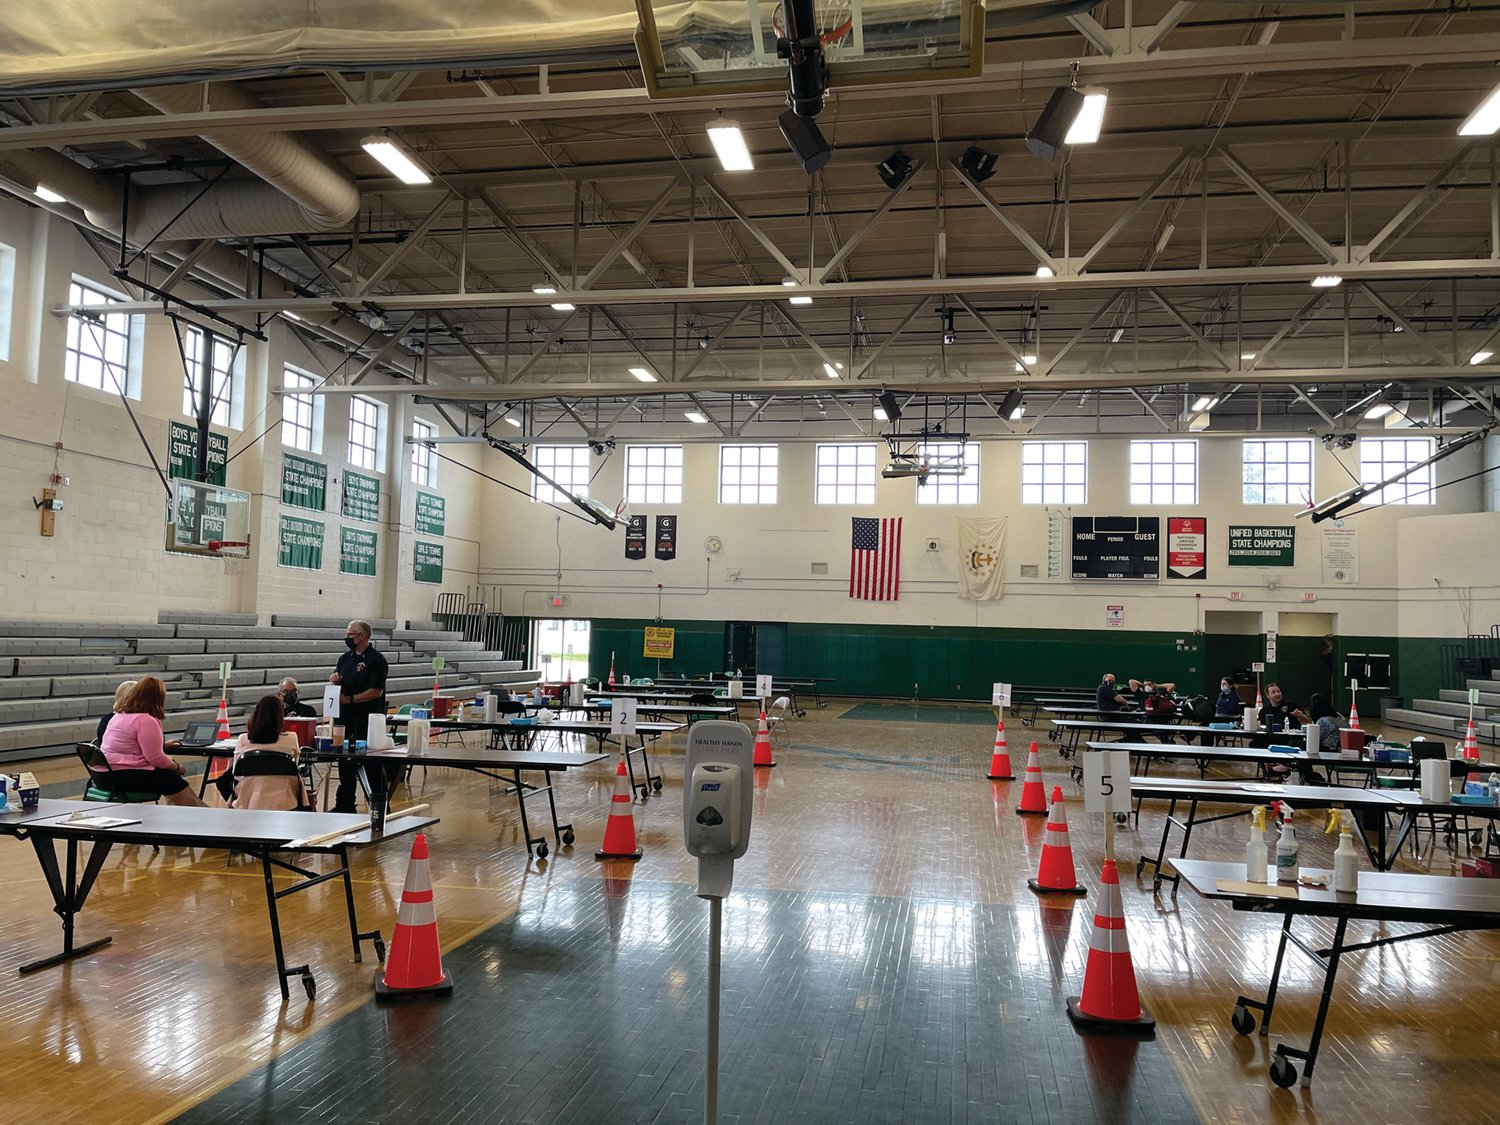 FAMILIAR SETTING: Officials said while demand was lower than initially projected, holding vaccination clinics in school-based settings like Cranston High School East's gymnasium is a vital part of the state's broader effort to make shots as accessible as possible.